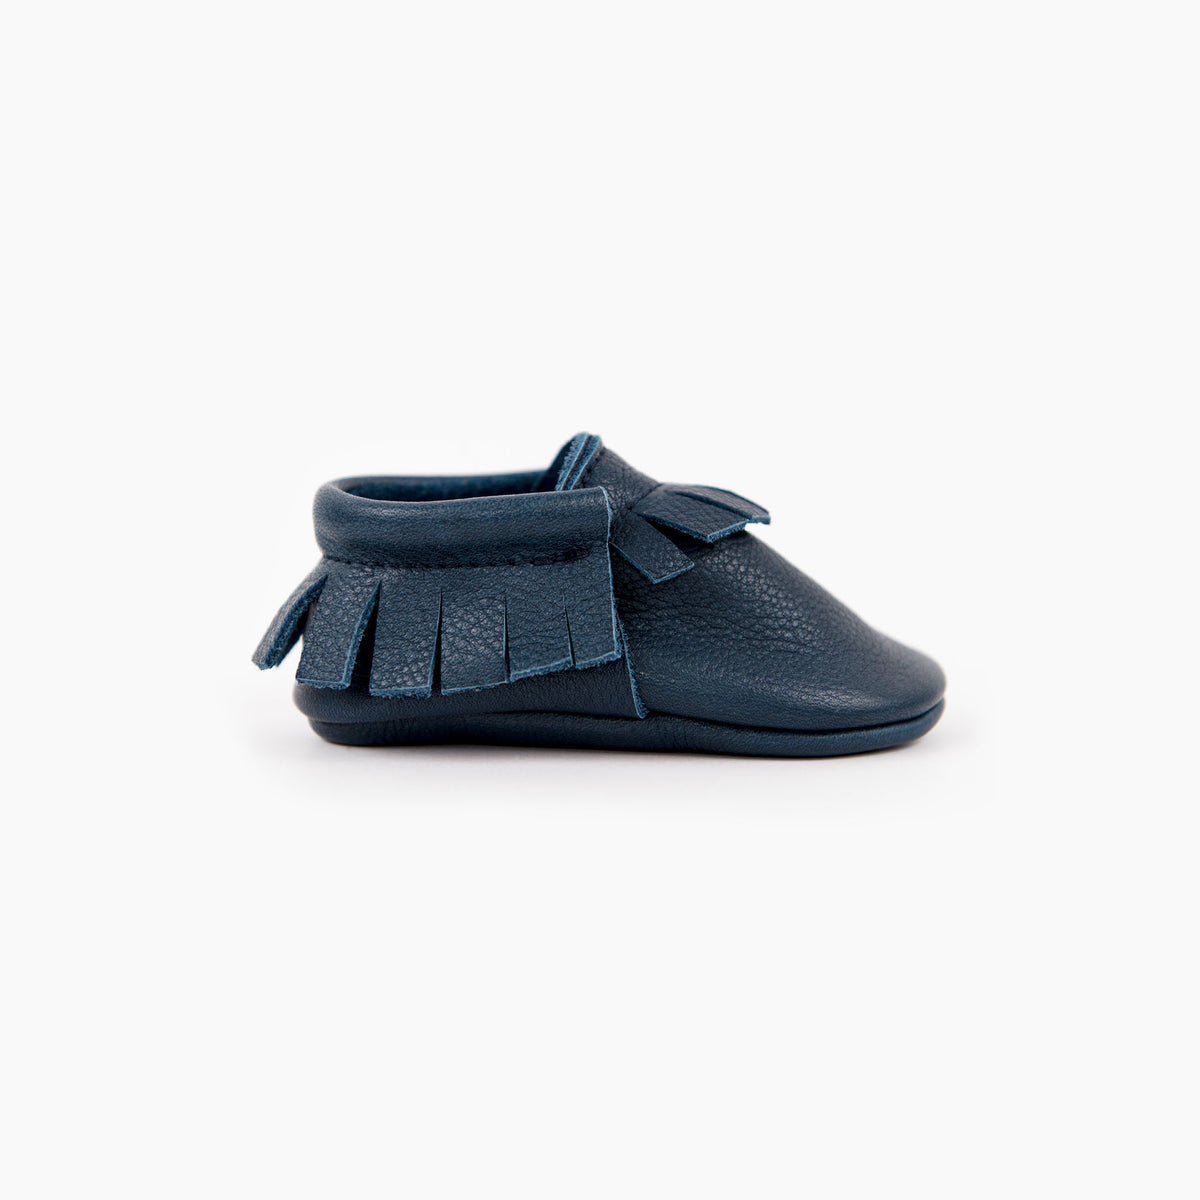 Navy blue leather baby moccasins from Amy and Ivor